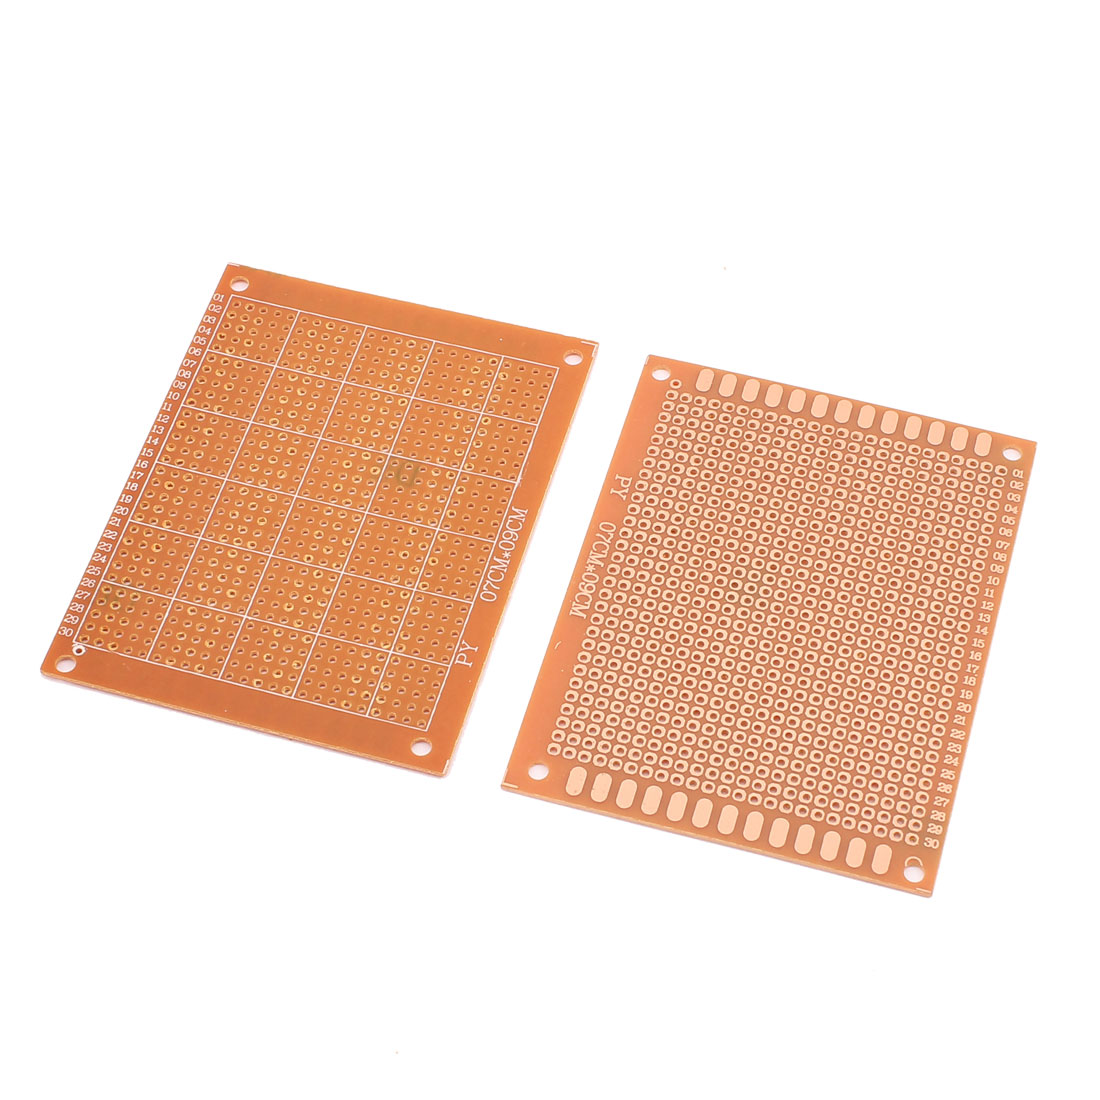 2pcs 9 x 7cm Copper Universal Single-Sided Prototyping Stripboard PCB Board